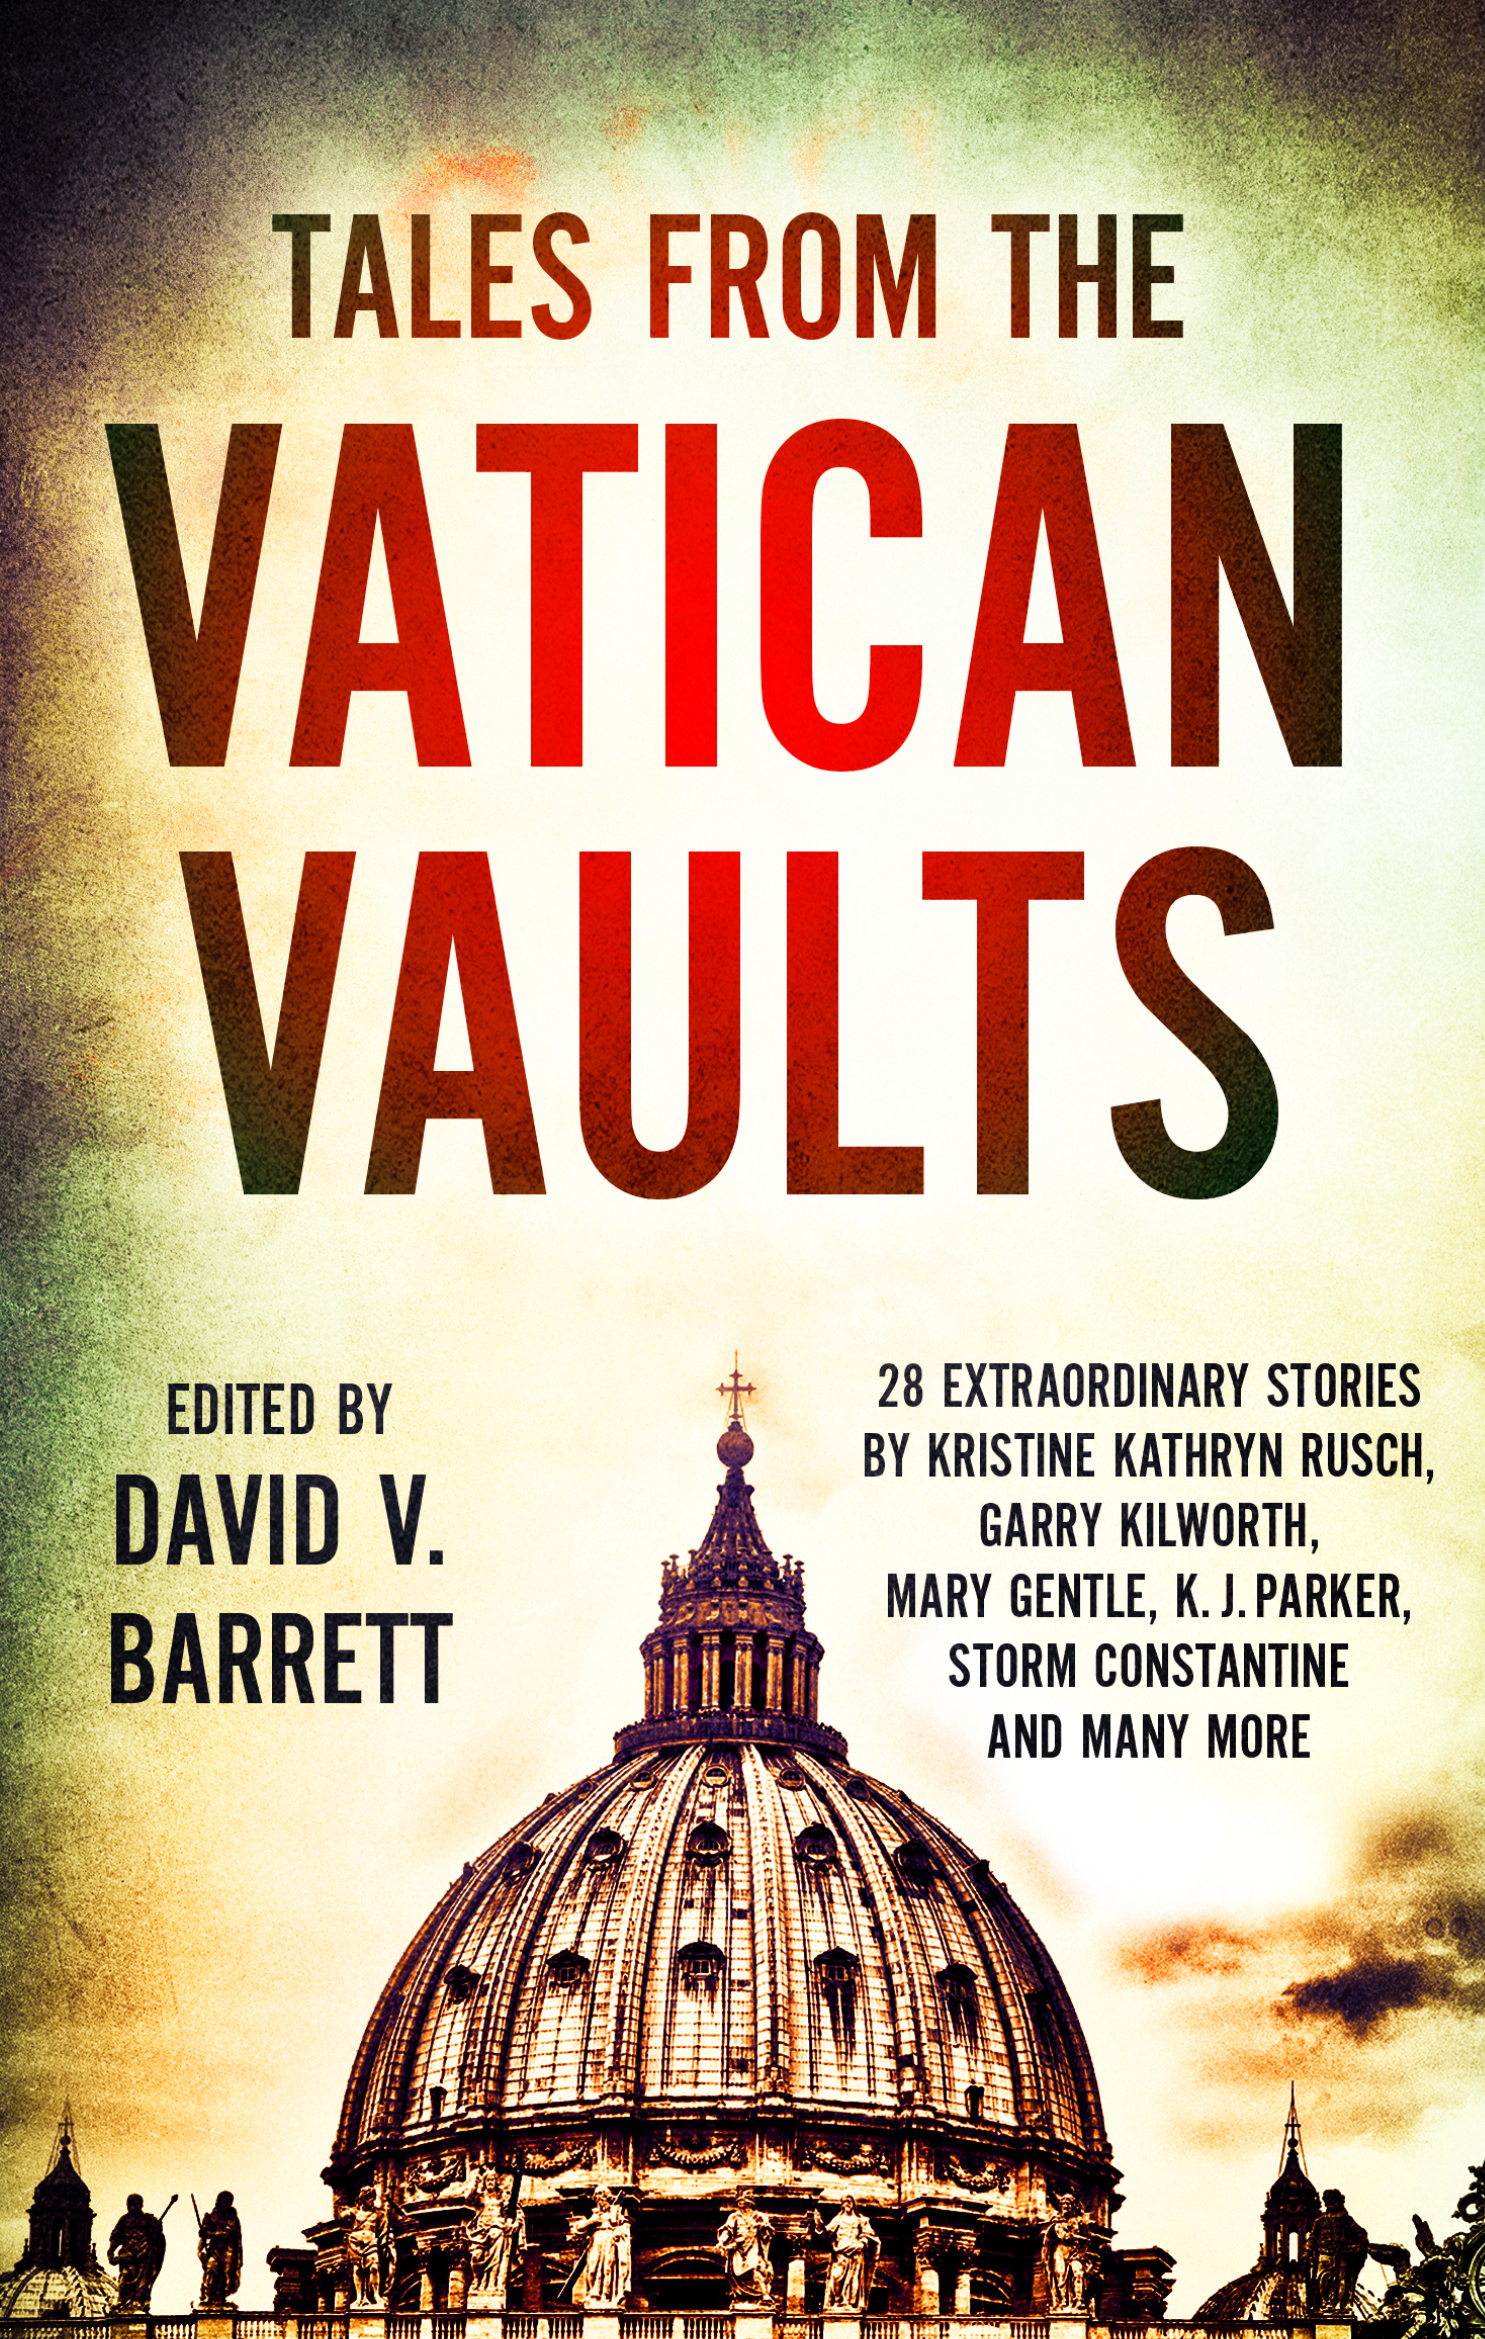 Tales from the Vatican Vaults: 26 science fiction and fantasy stories based on an extraordinary alternate history